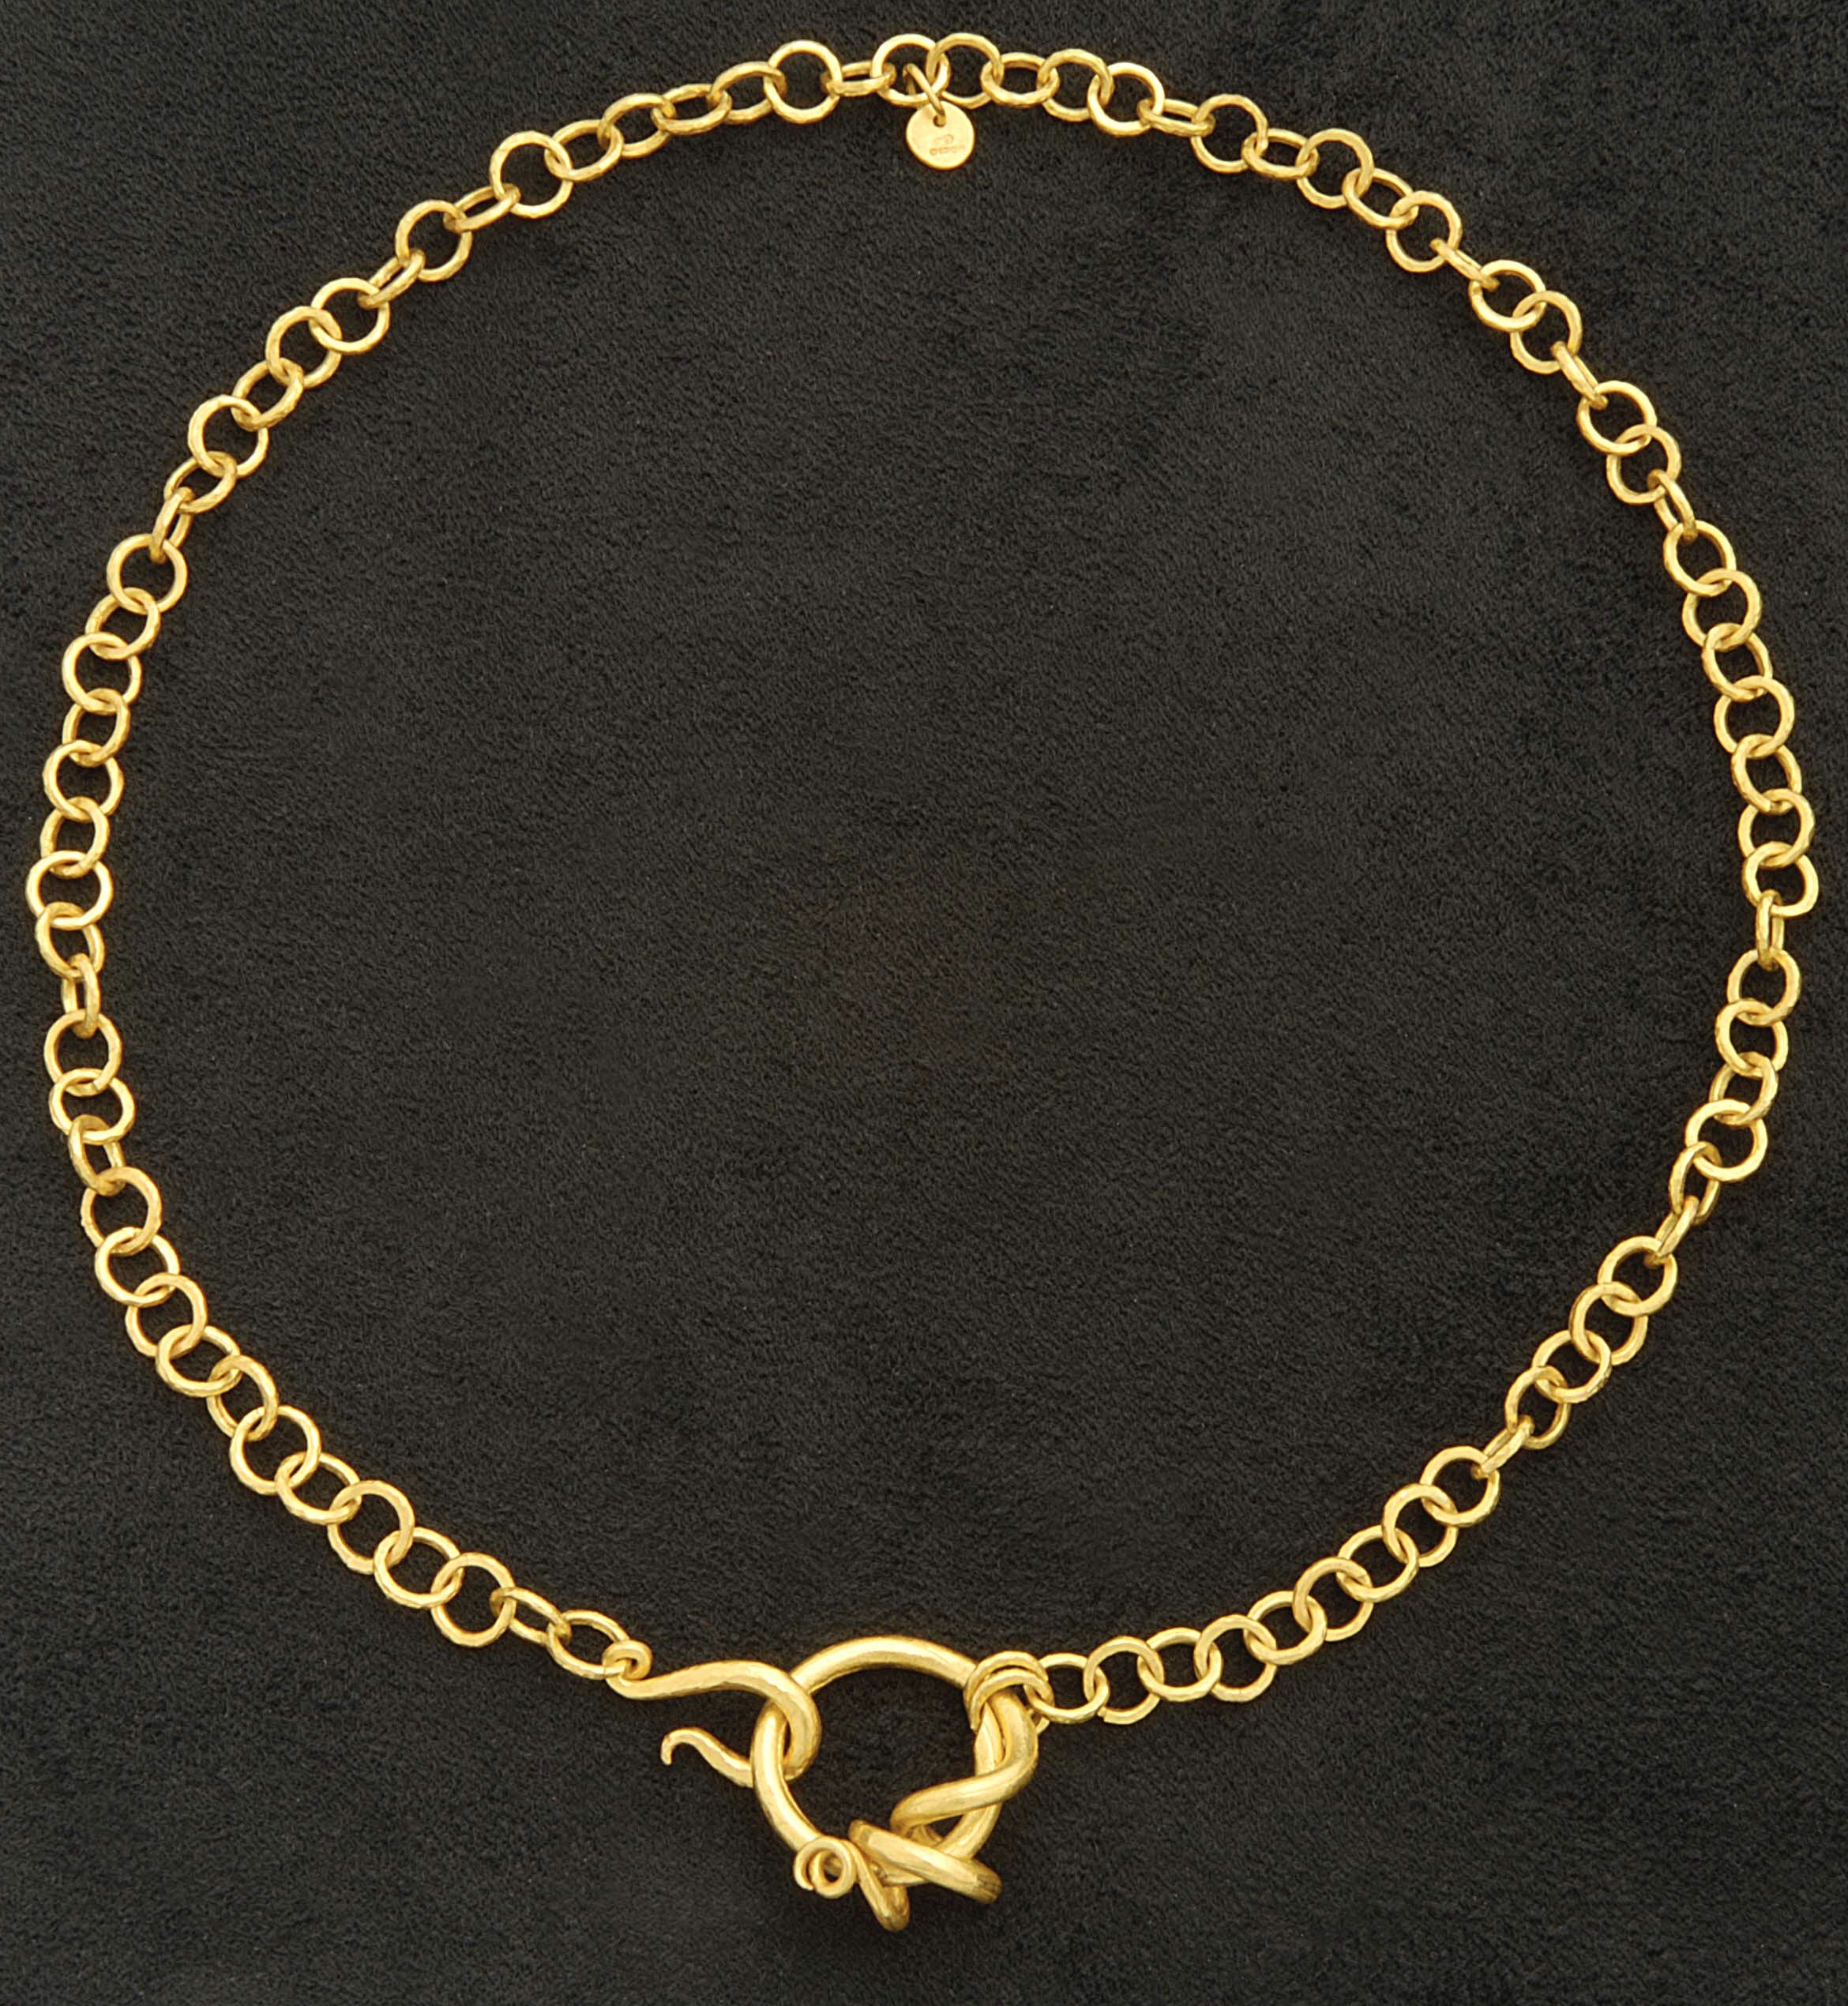 22ct gold handmade chain necklace